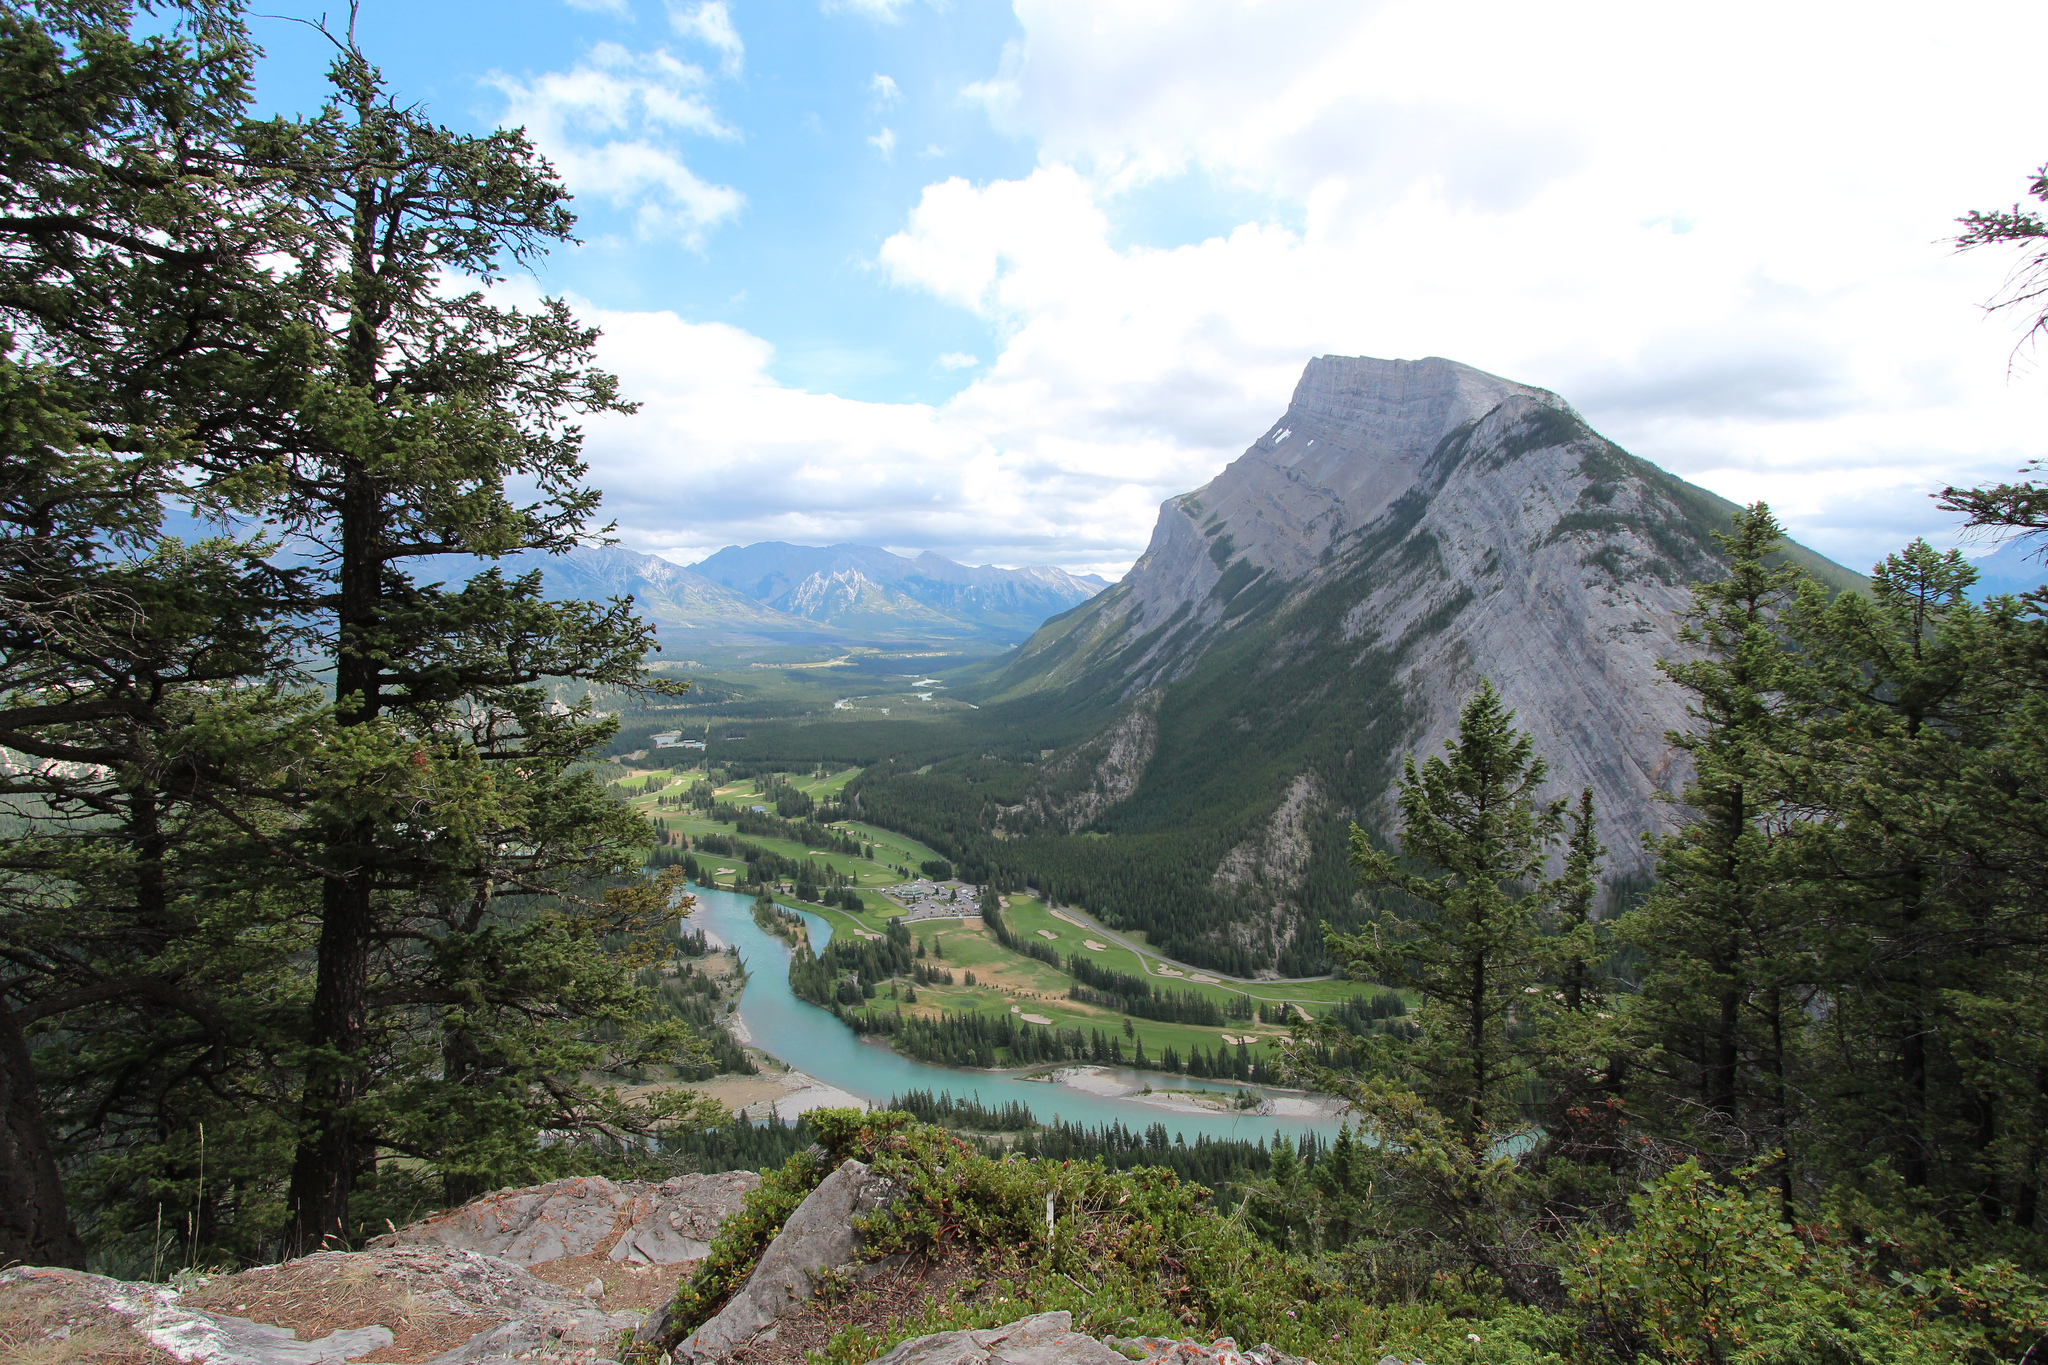 """My Visit to Tunnel Mountain Banff Alberta Canada"" by Davebloggs via Flickr Creative Commons"